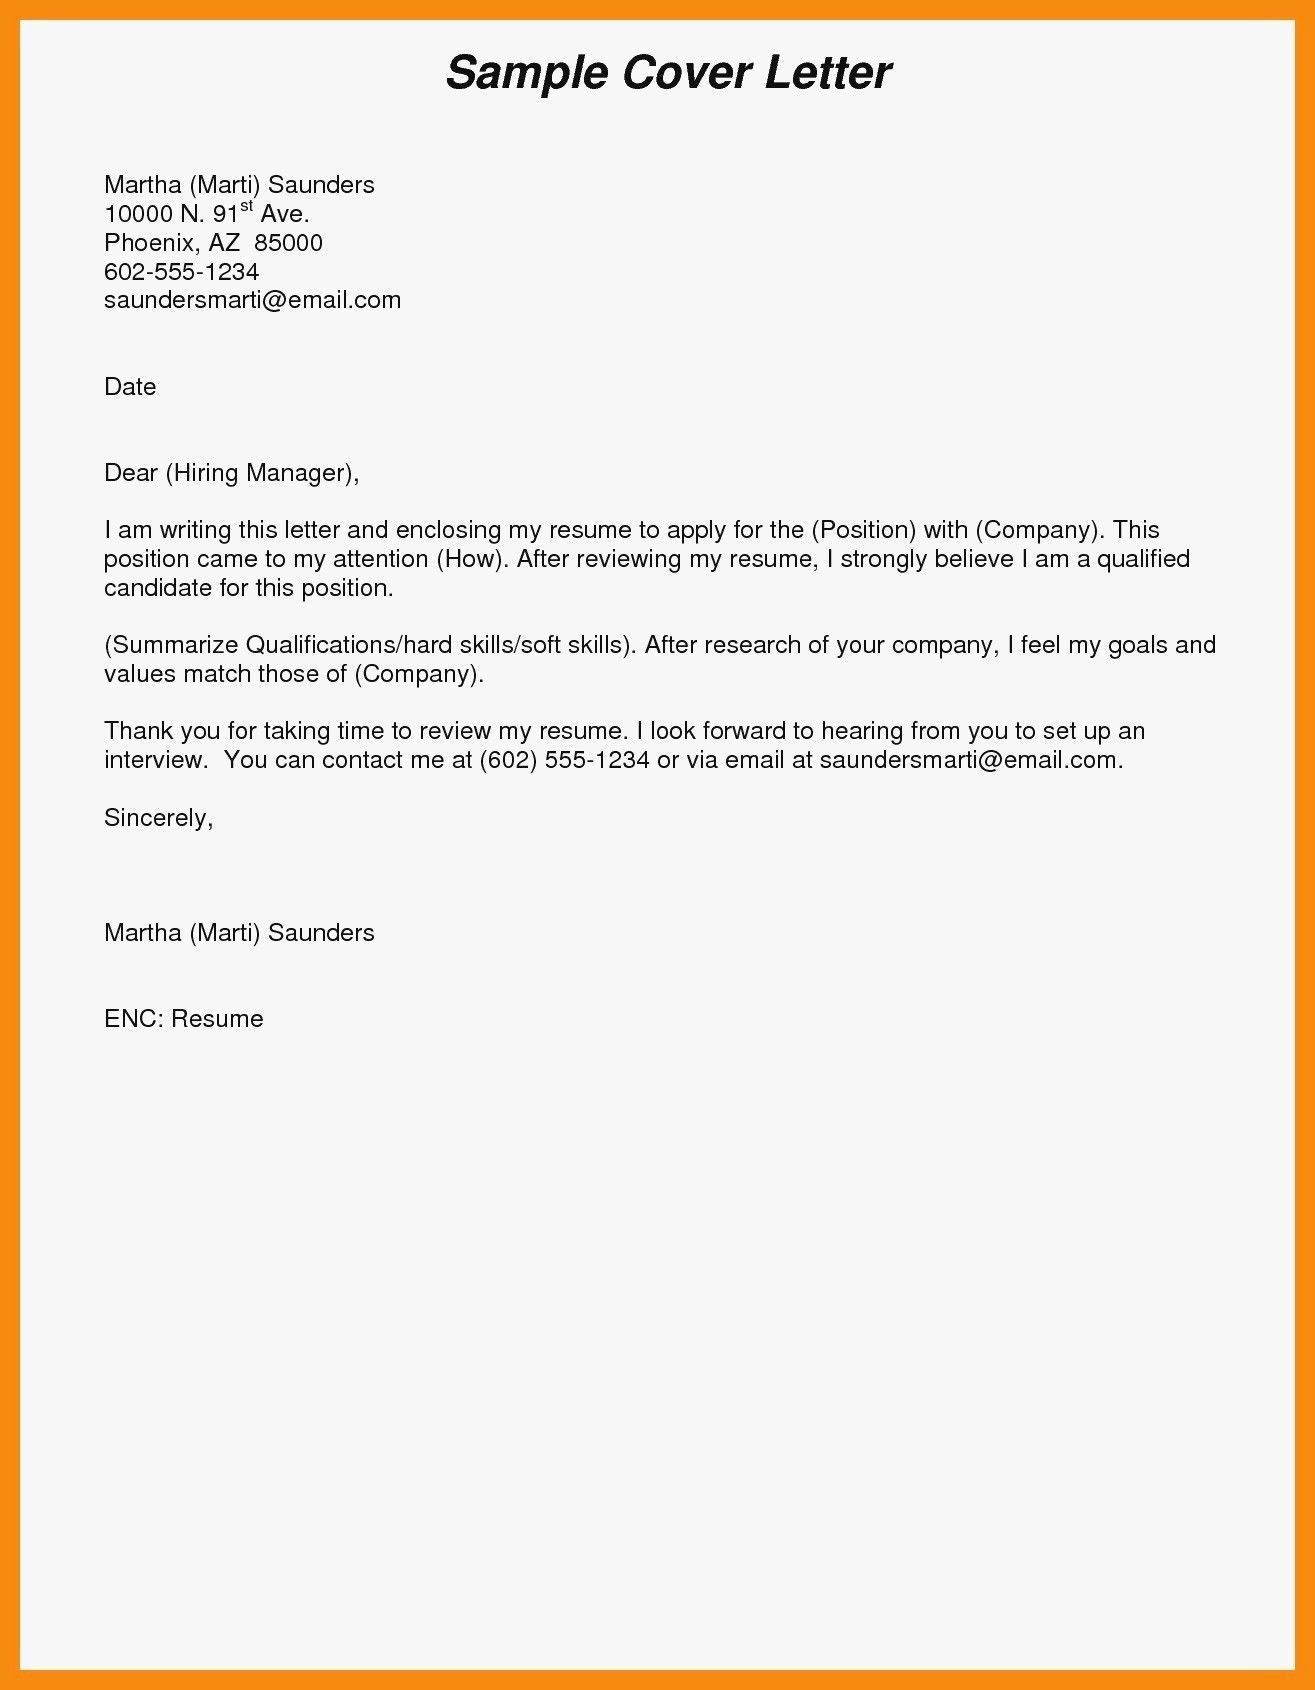 Sample Email Cover Letter For Resume 25 Email Cover Letter Email Cover Letter Cover Letter Job